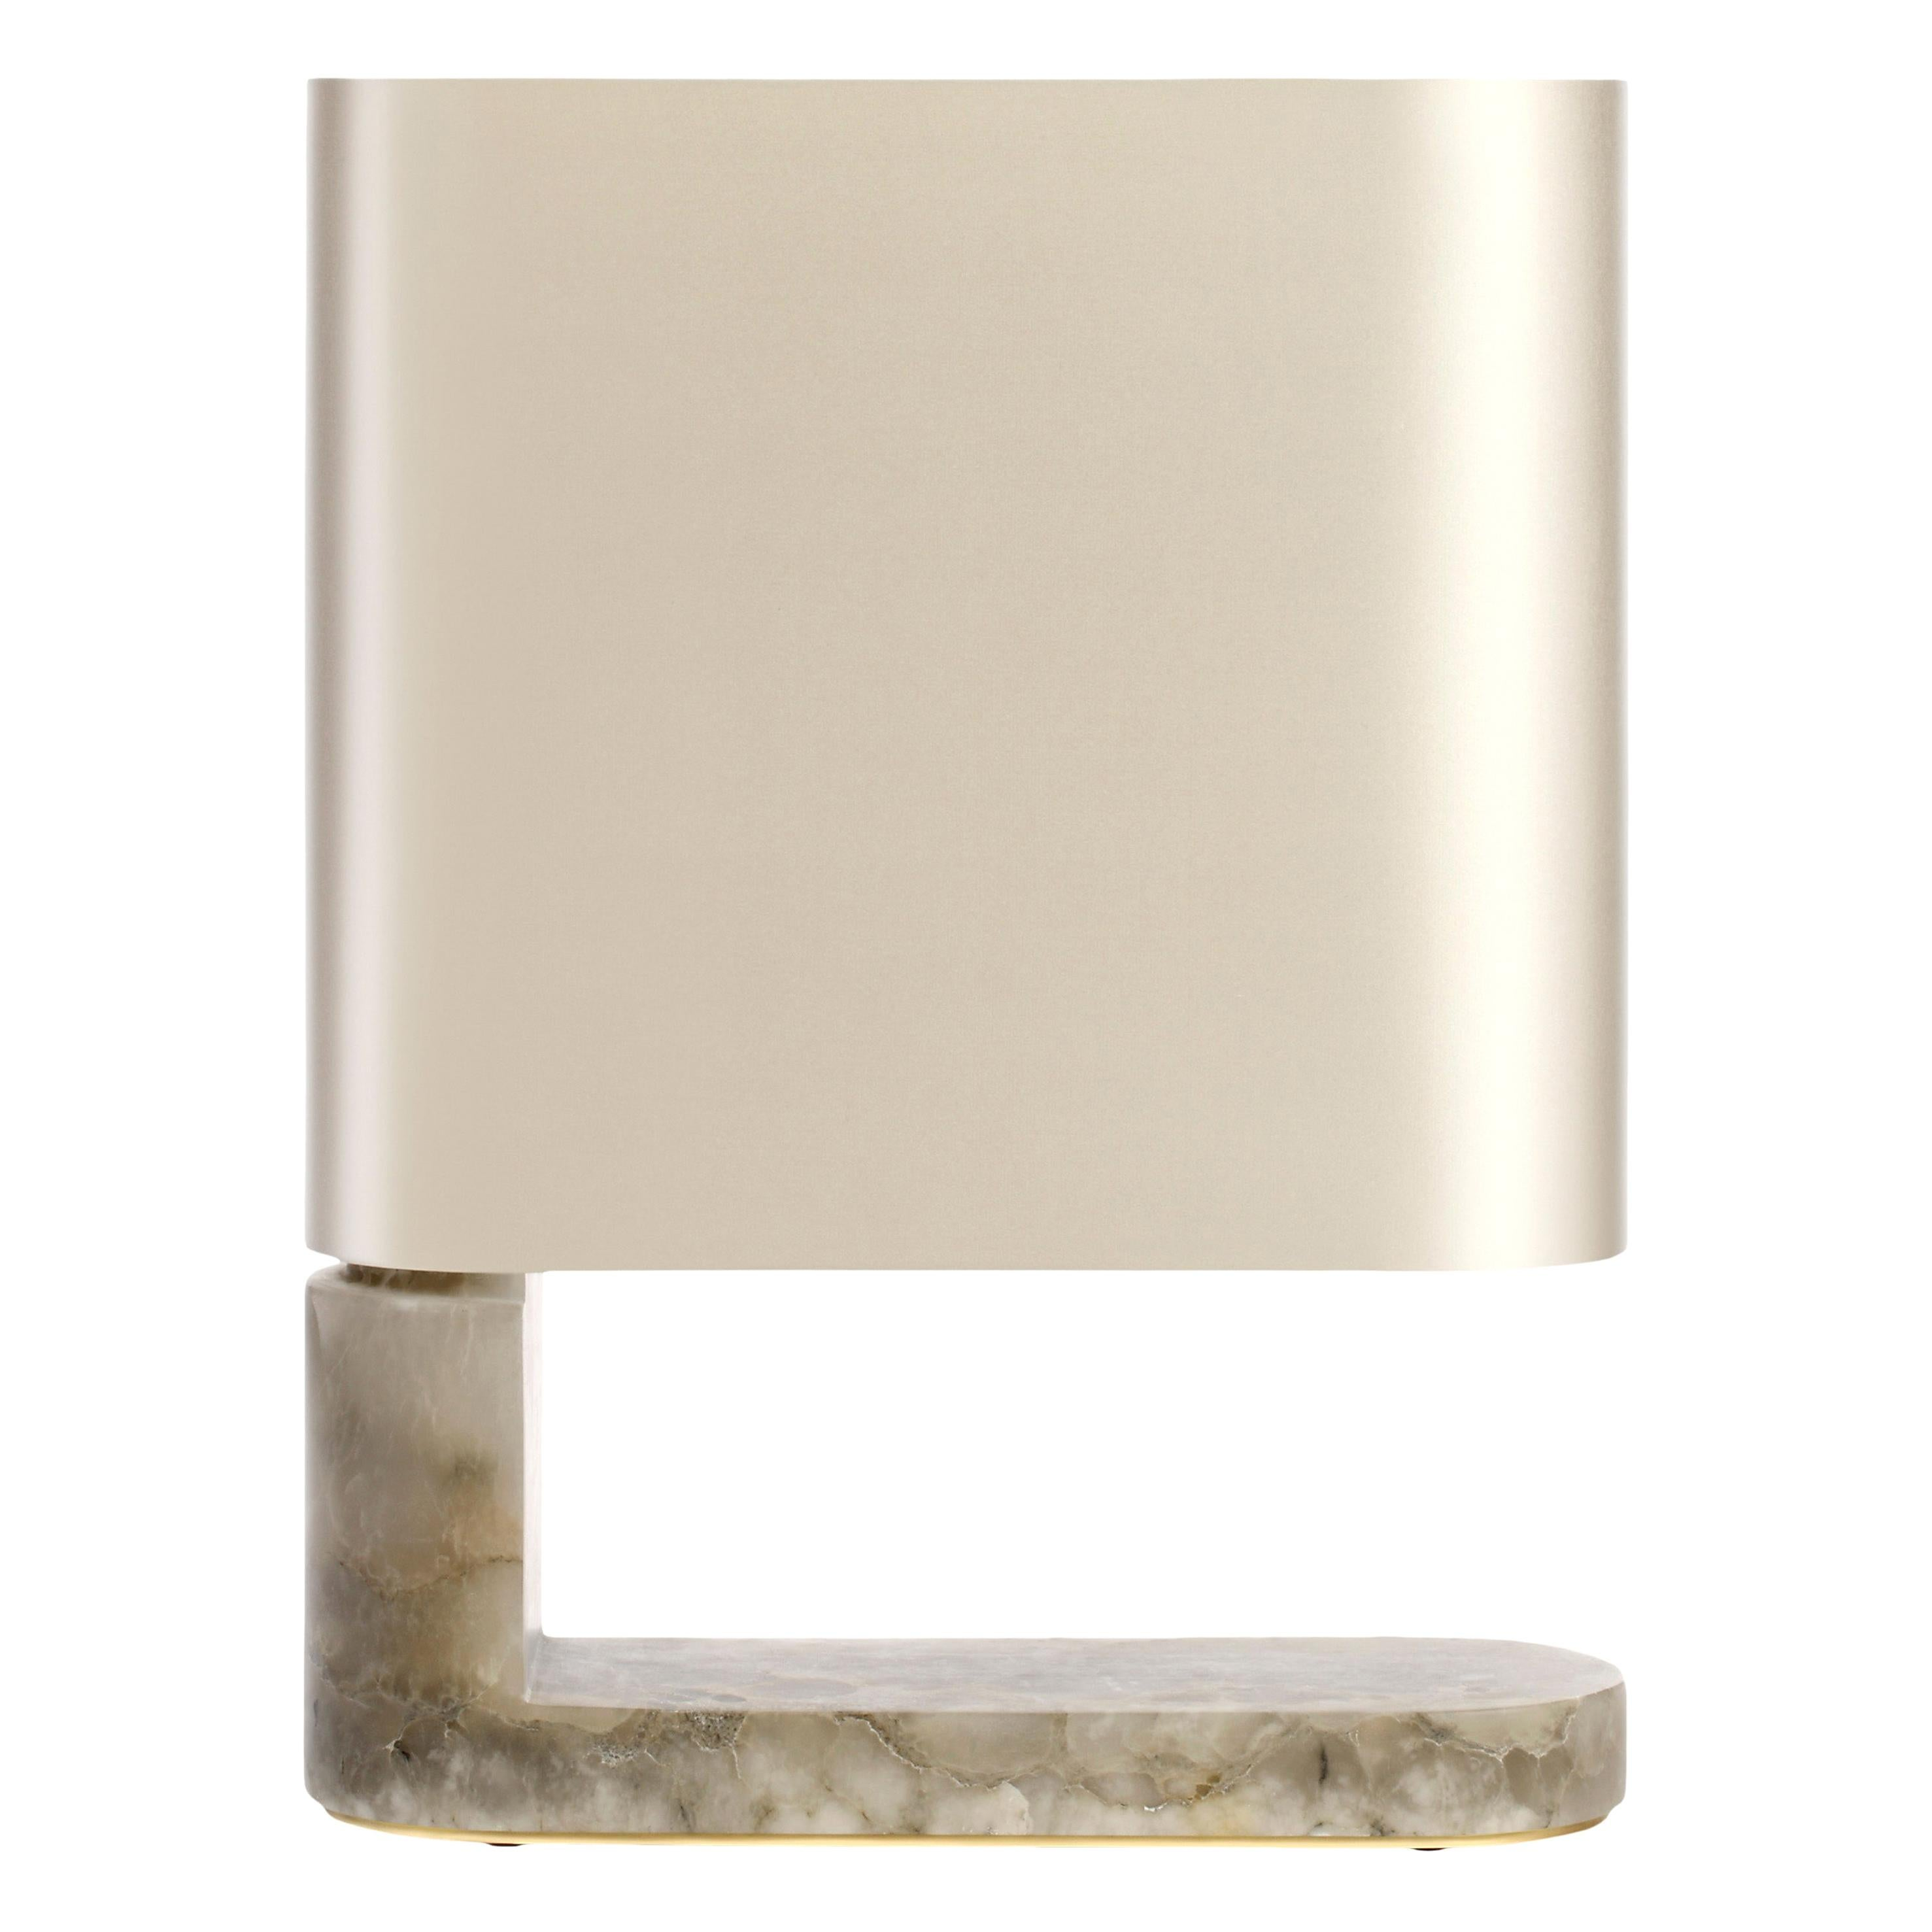 Alabaster Columbo Table Lamp by CTO Lighting